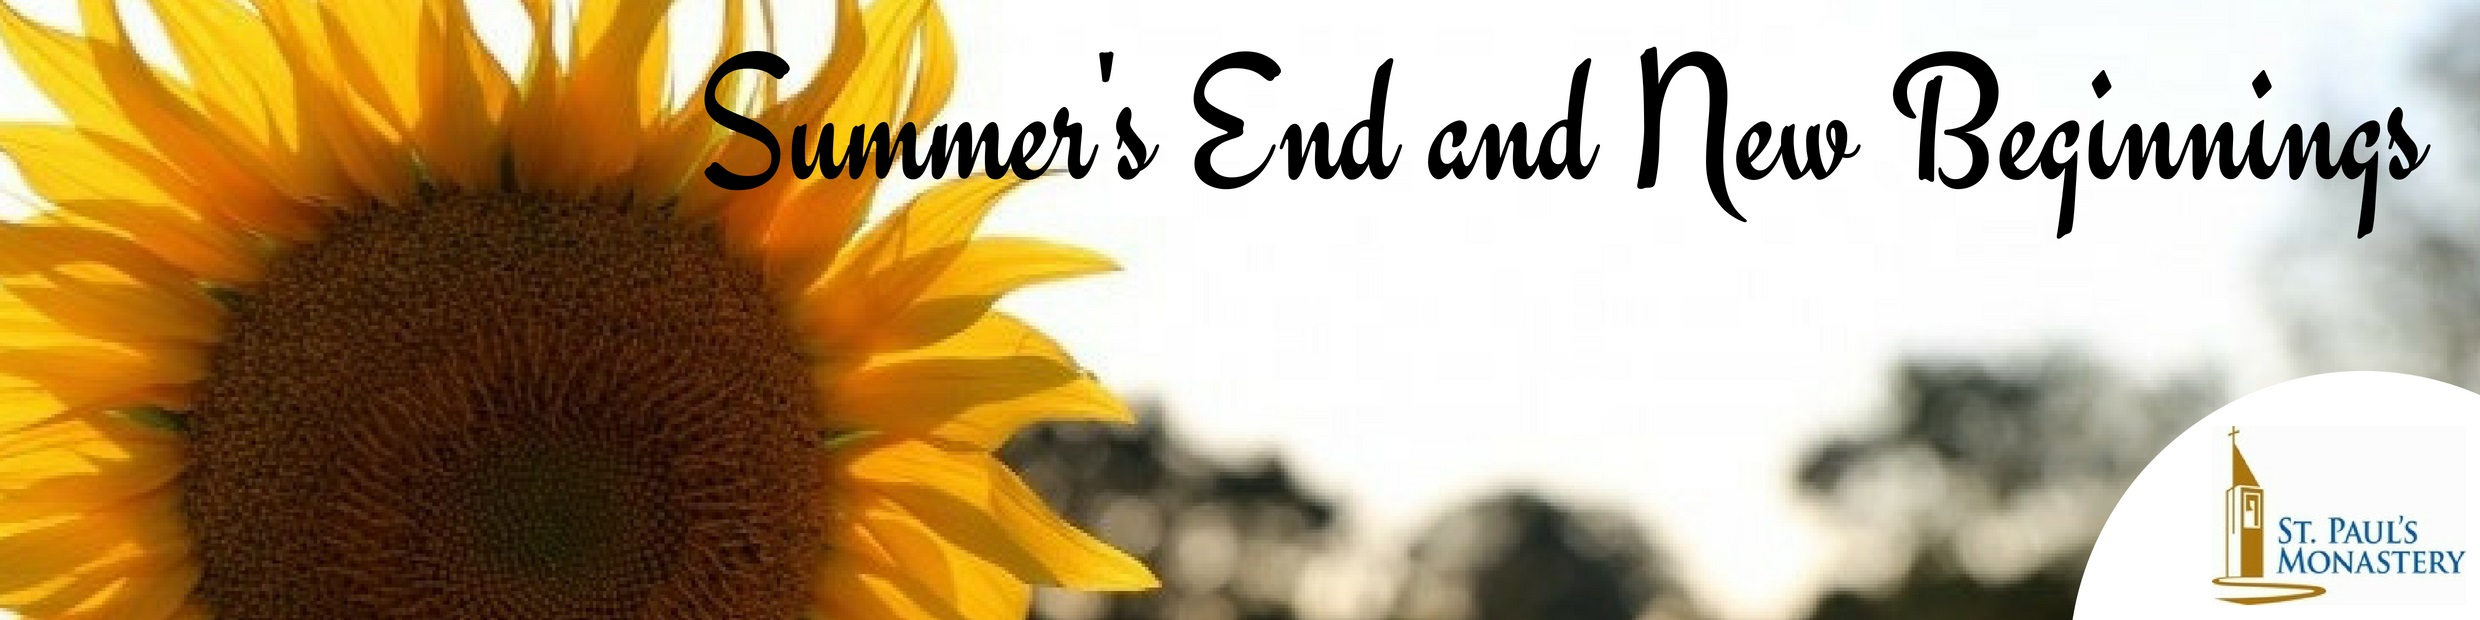 Header - Summer's End and New Beginnings